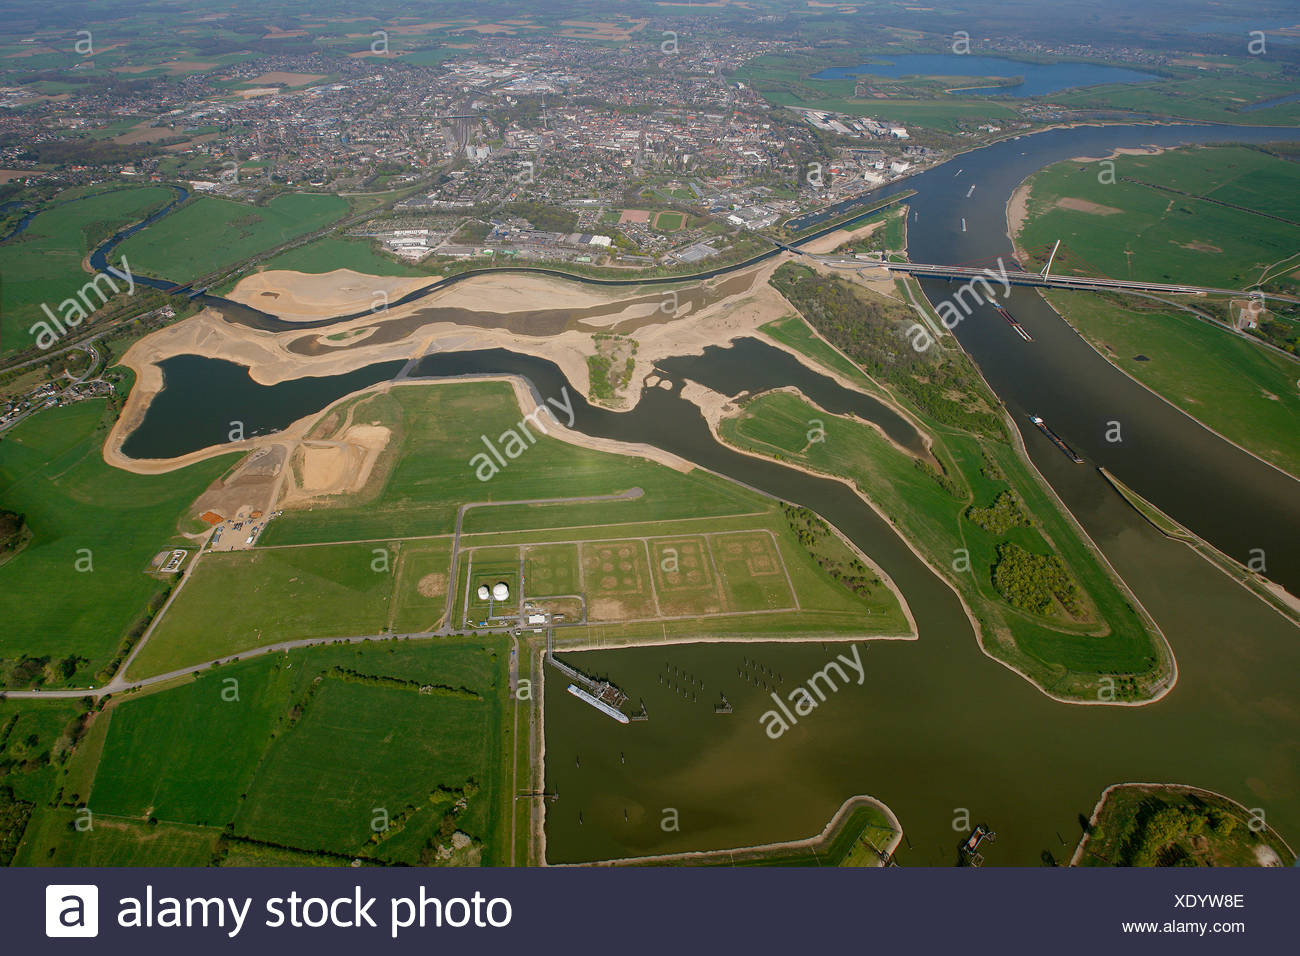 Aerial view, Lippe estuary, Lippe conversion, construction site, Rhine river, Lippe Association, Wesel, Ruhrgebiet region - Stock Image